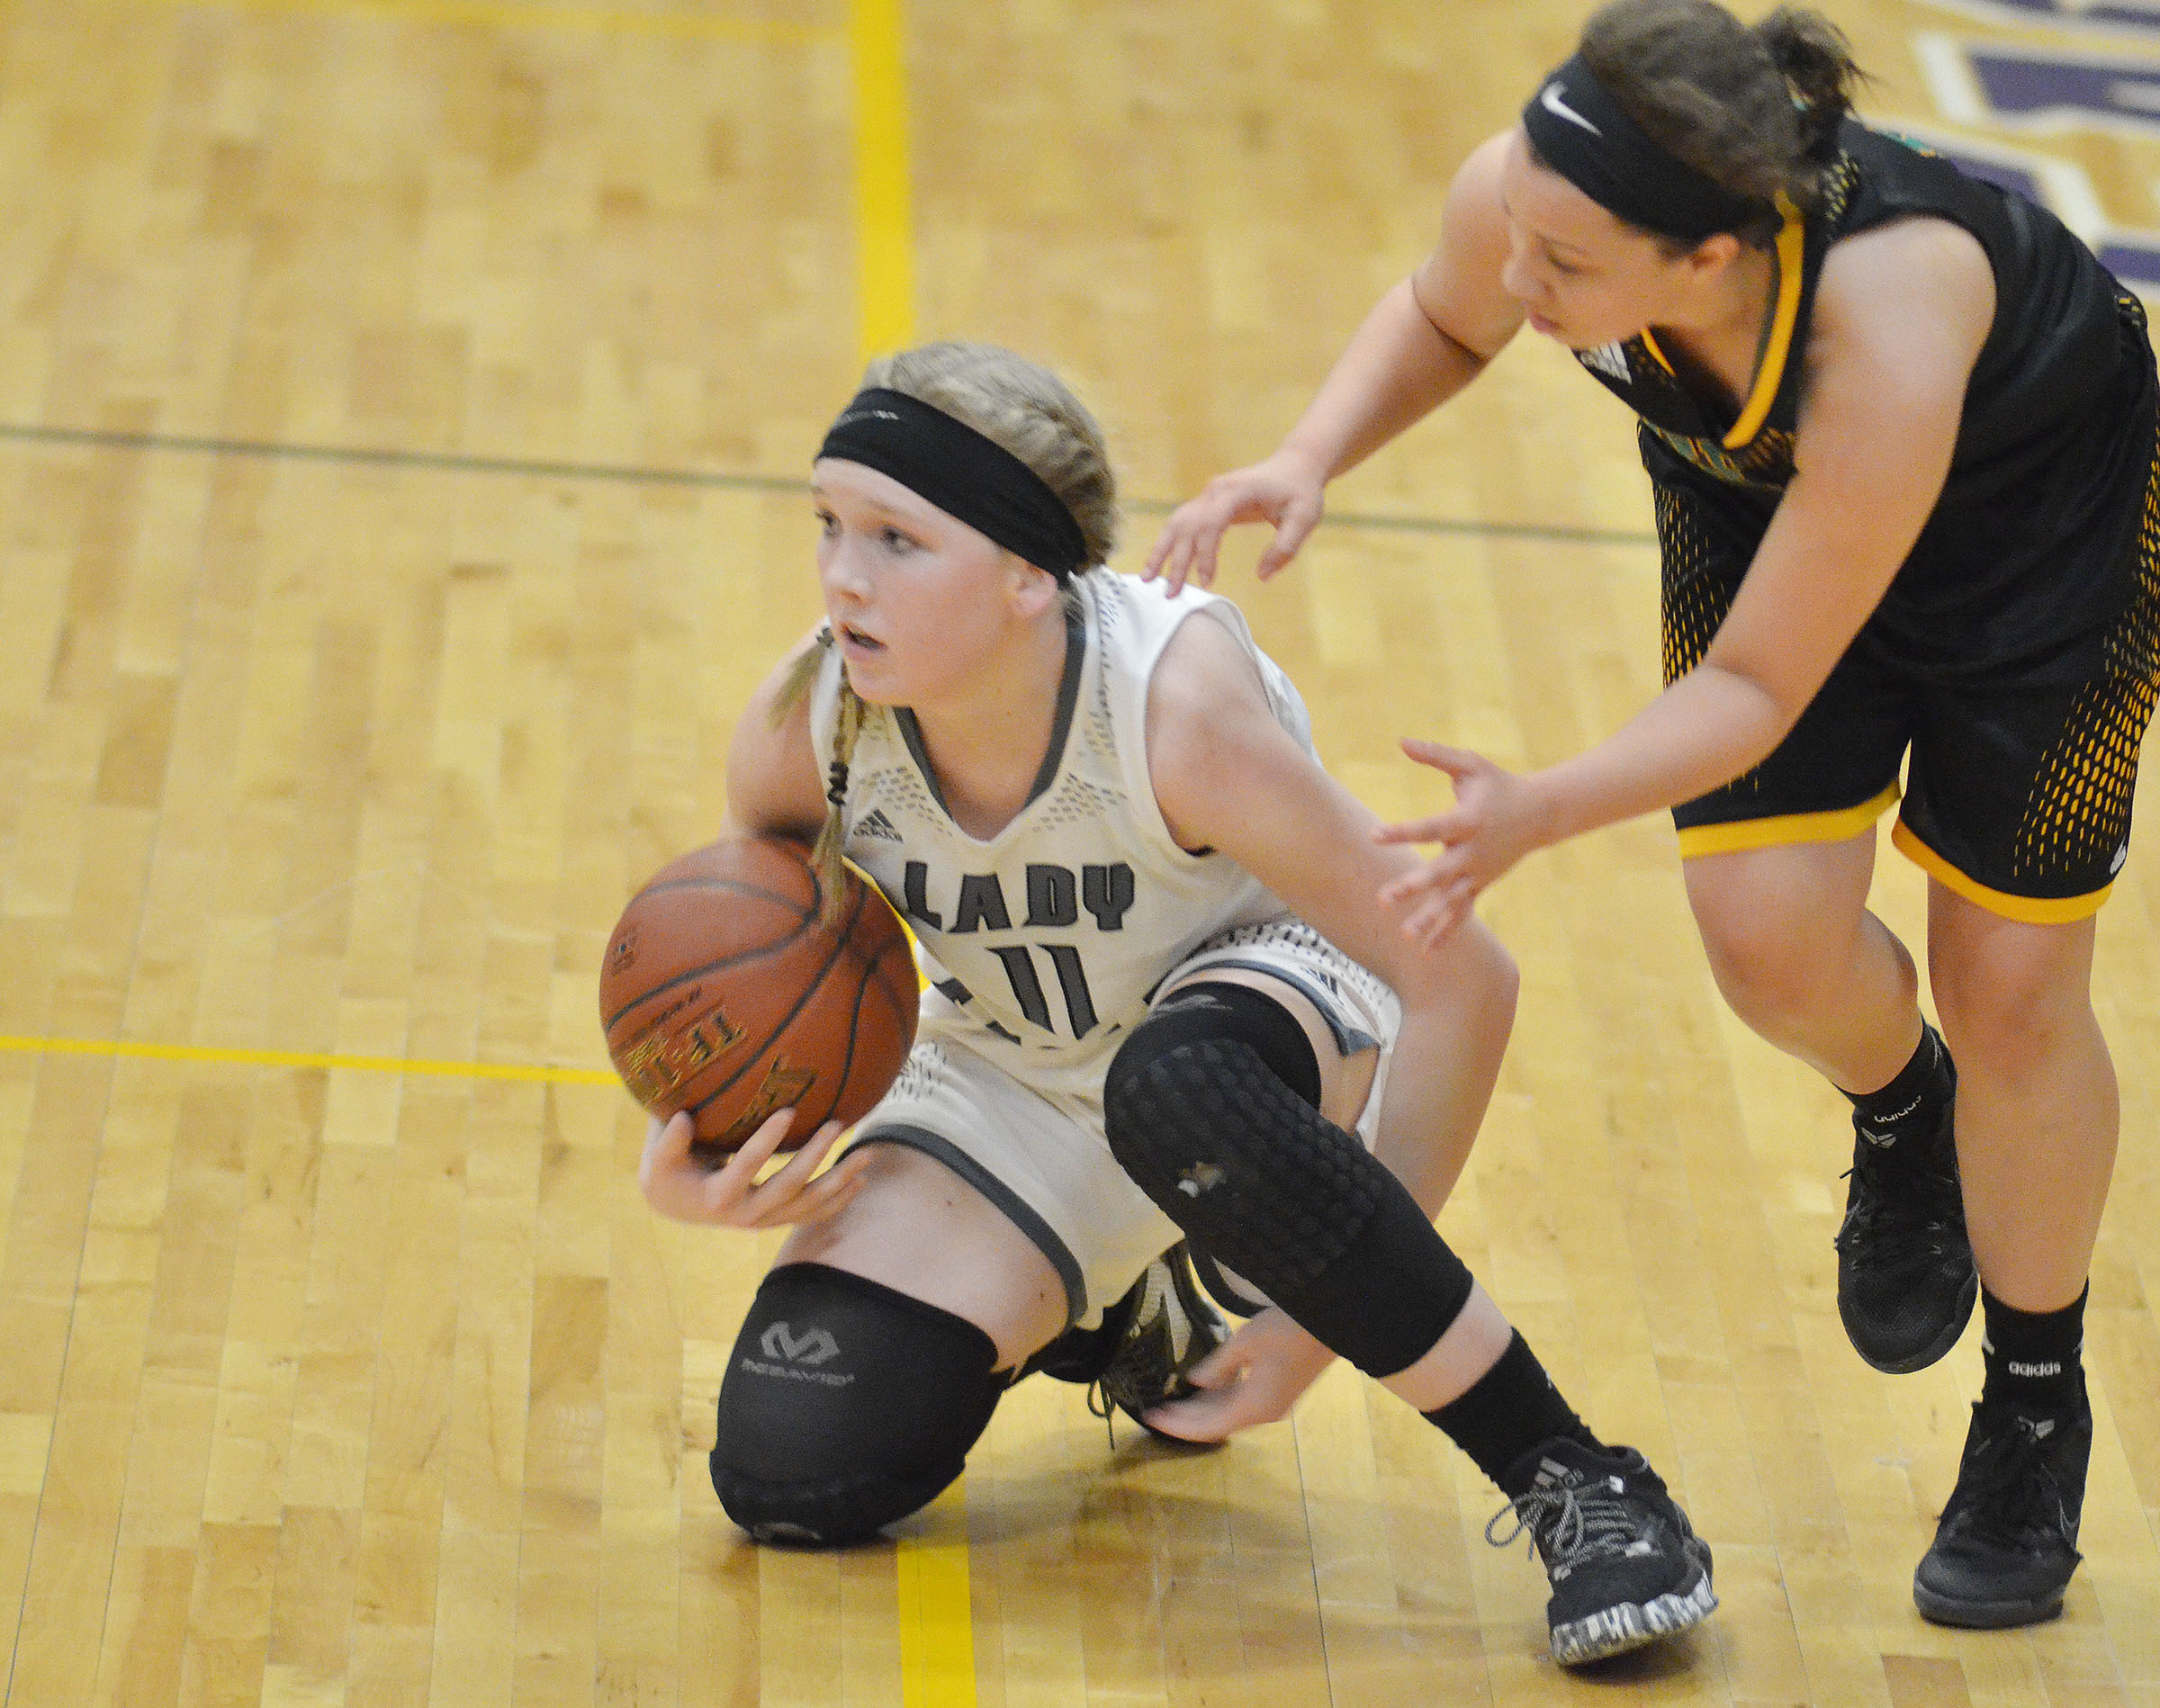 Campbellsville Middle School eighth-grader Catlyn Clausen protects the ball.